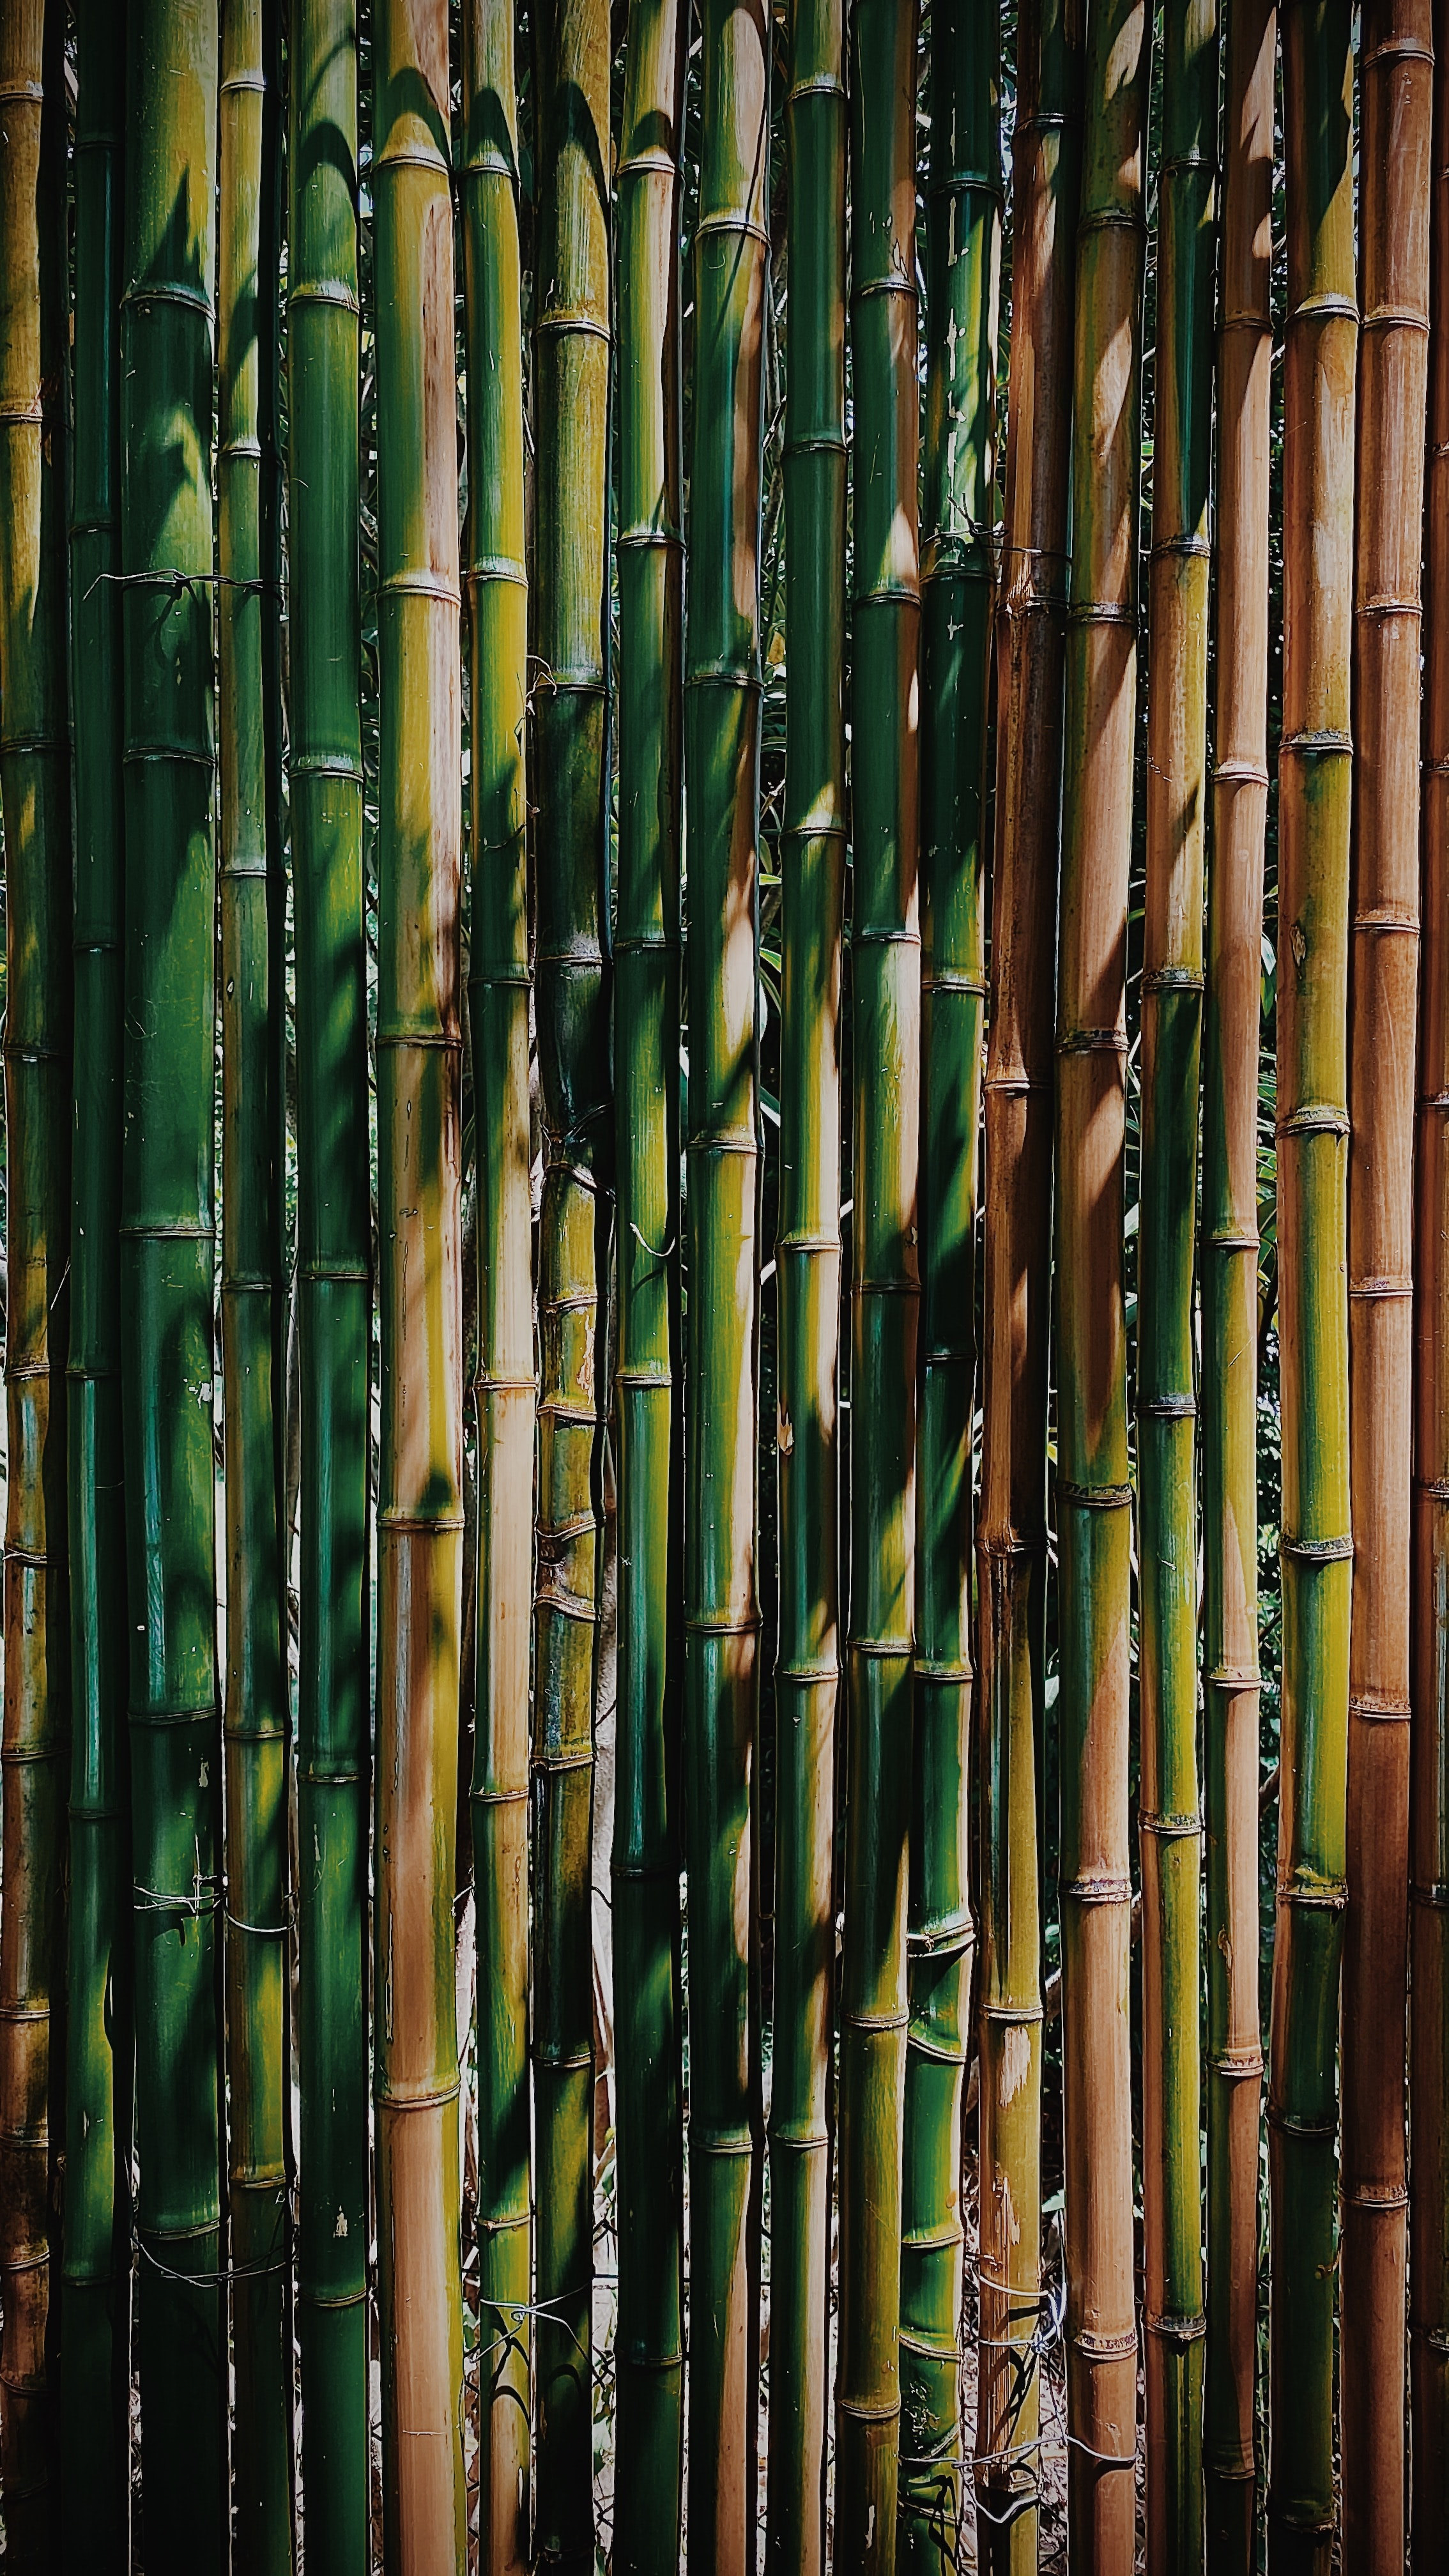 53924 download wallpaper Textures, Texture, Bamboo, Stems, Plant screensavers and pictures for free